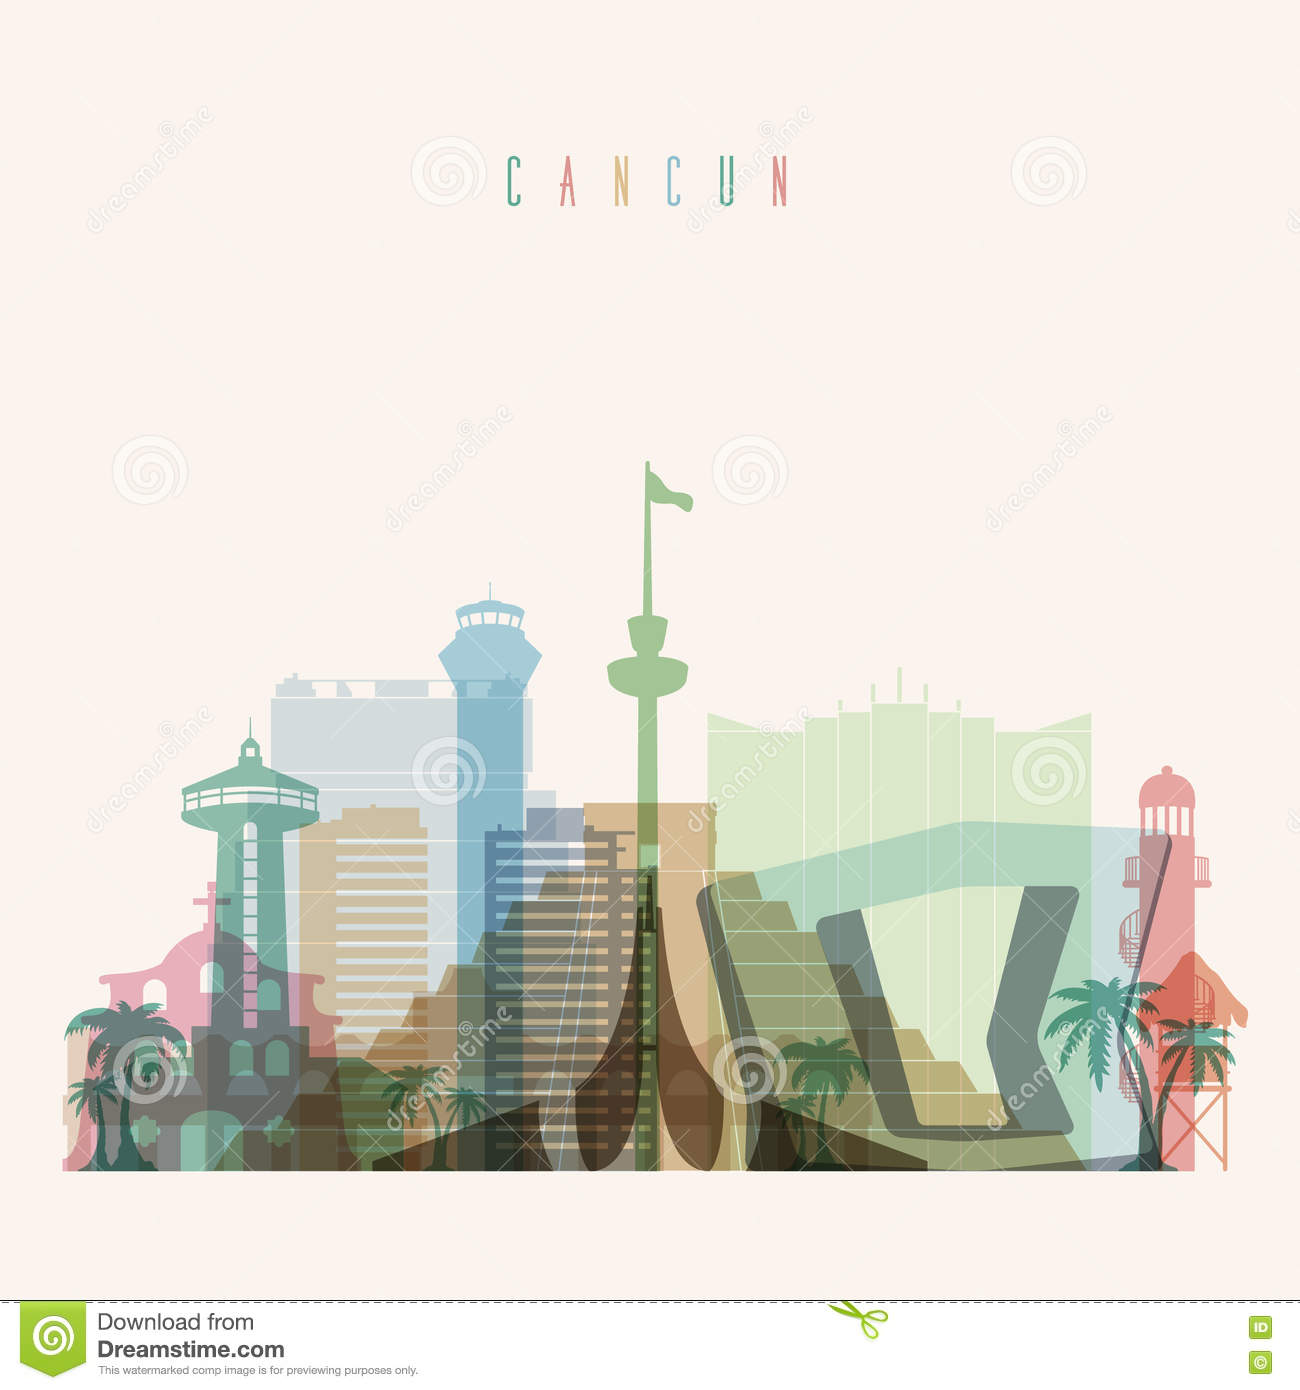 Cancun Skyline Poster Stock Vector Illustration Of Pyramid 81308407